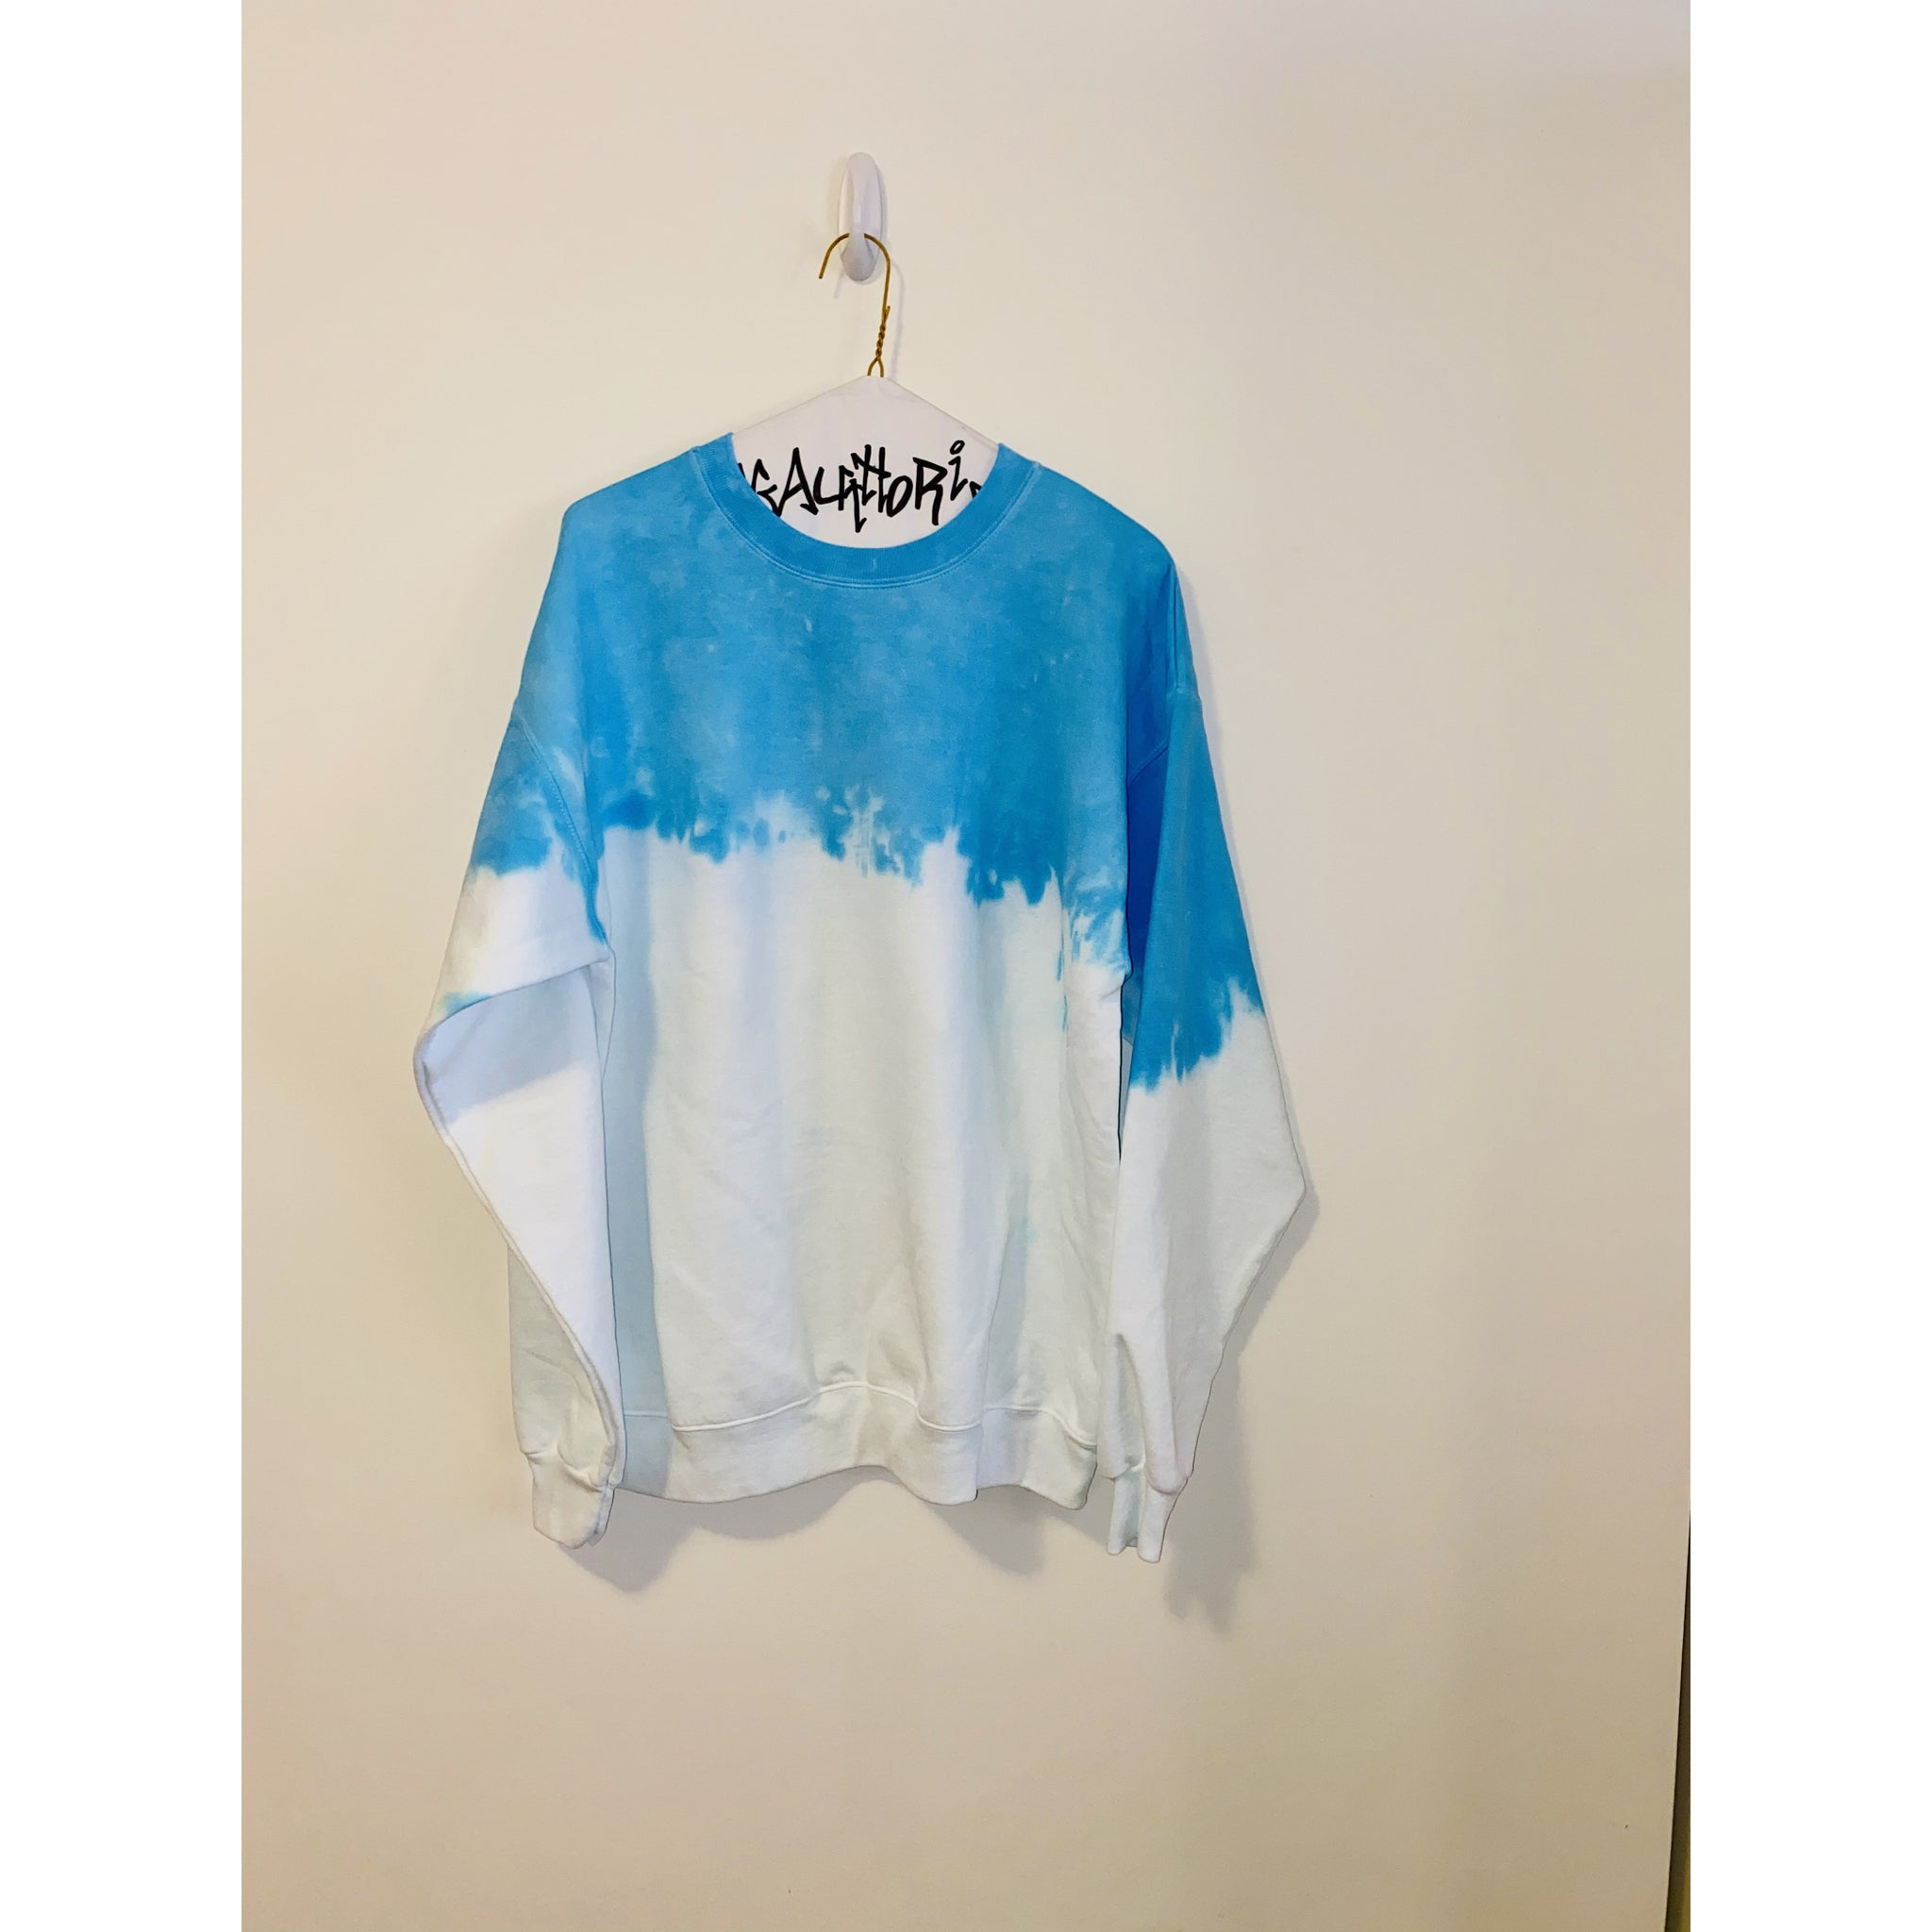 KIDS: Neon Blue Acid Wash Sweatshirt